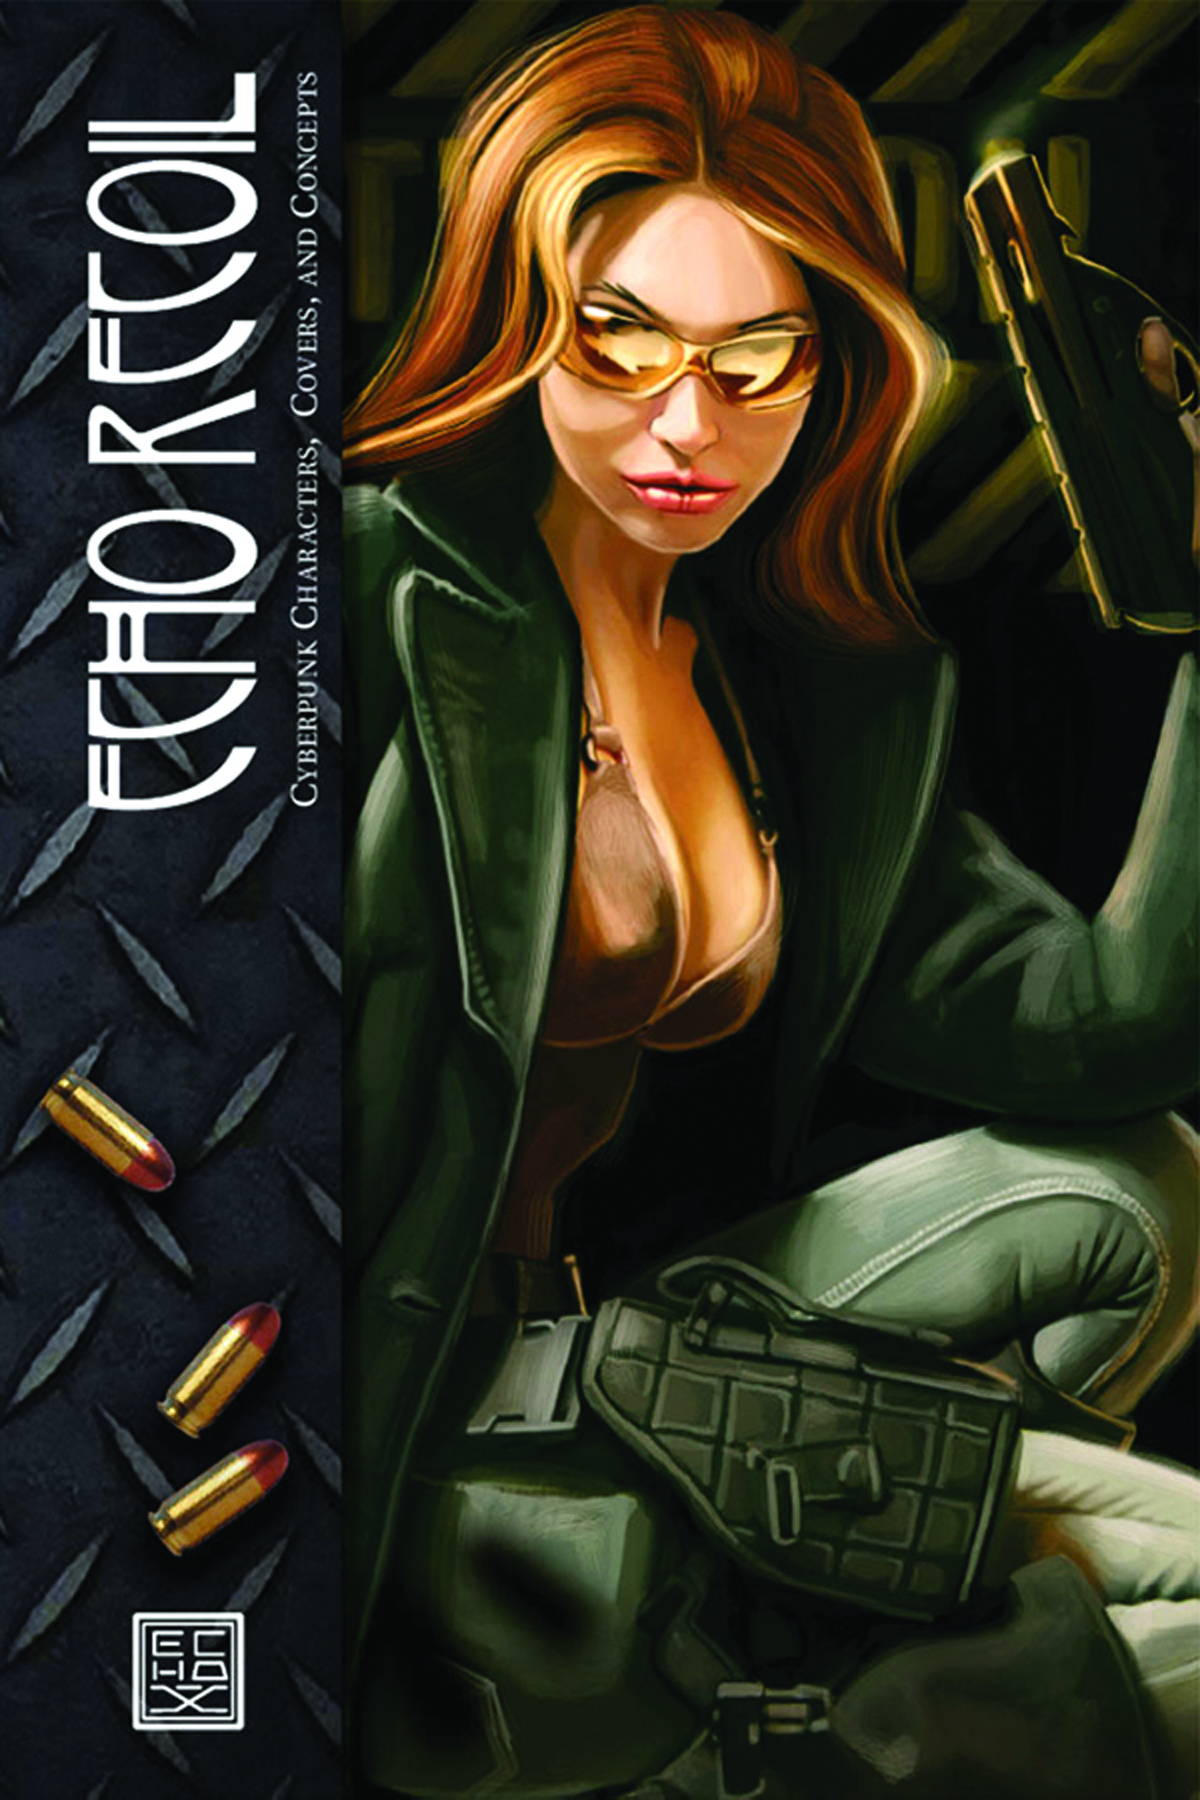 ECHO RECOIL CYBERPUNK CHARACTERS COVERS & CONCEPTS HC